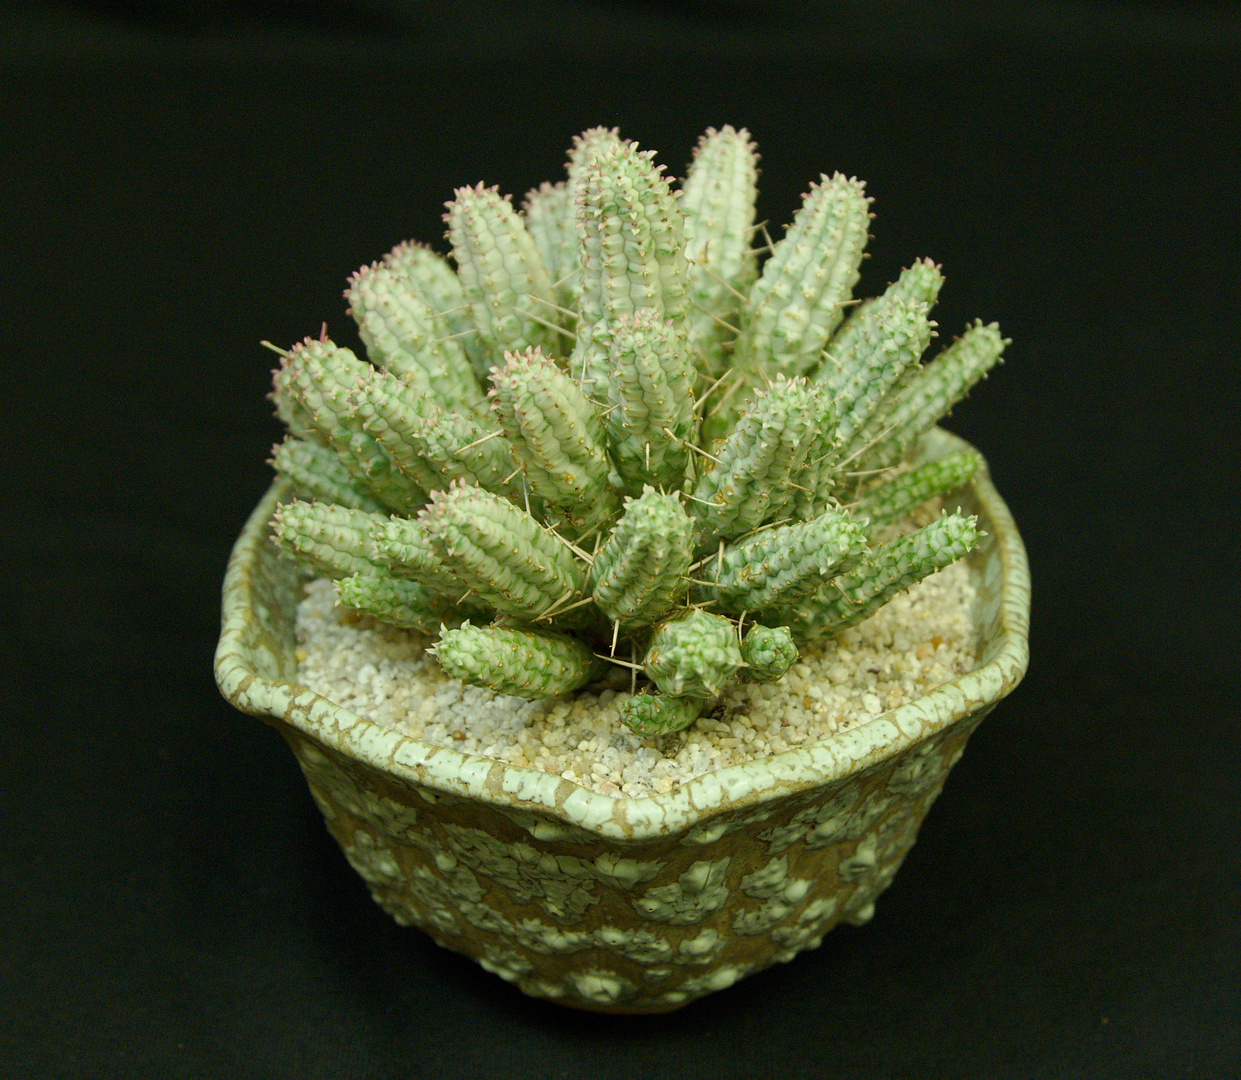 SCCSS 2017 May - Winner Novice Succulent - Sally Fasteau - Euphorbia mammillaris f. variegata